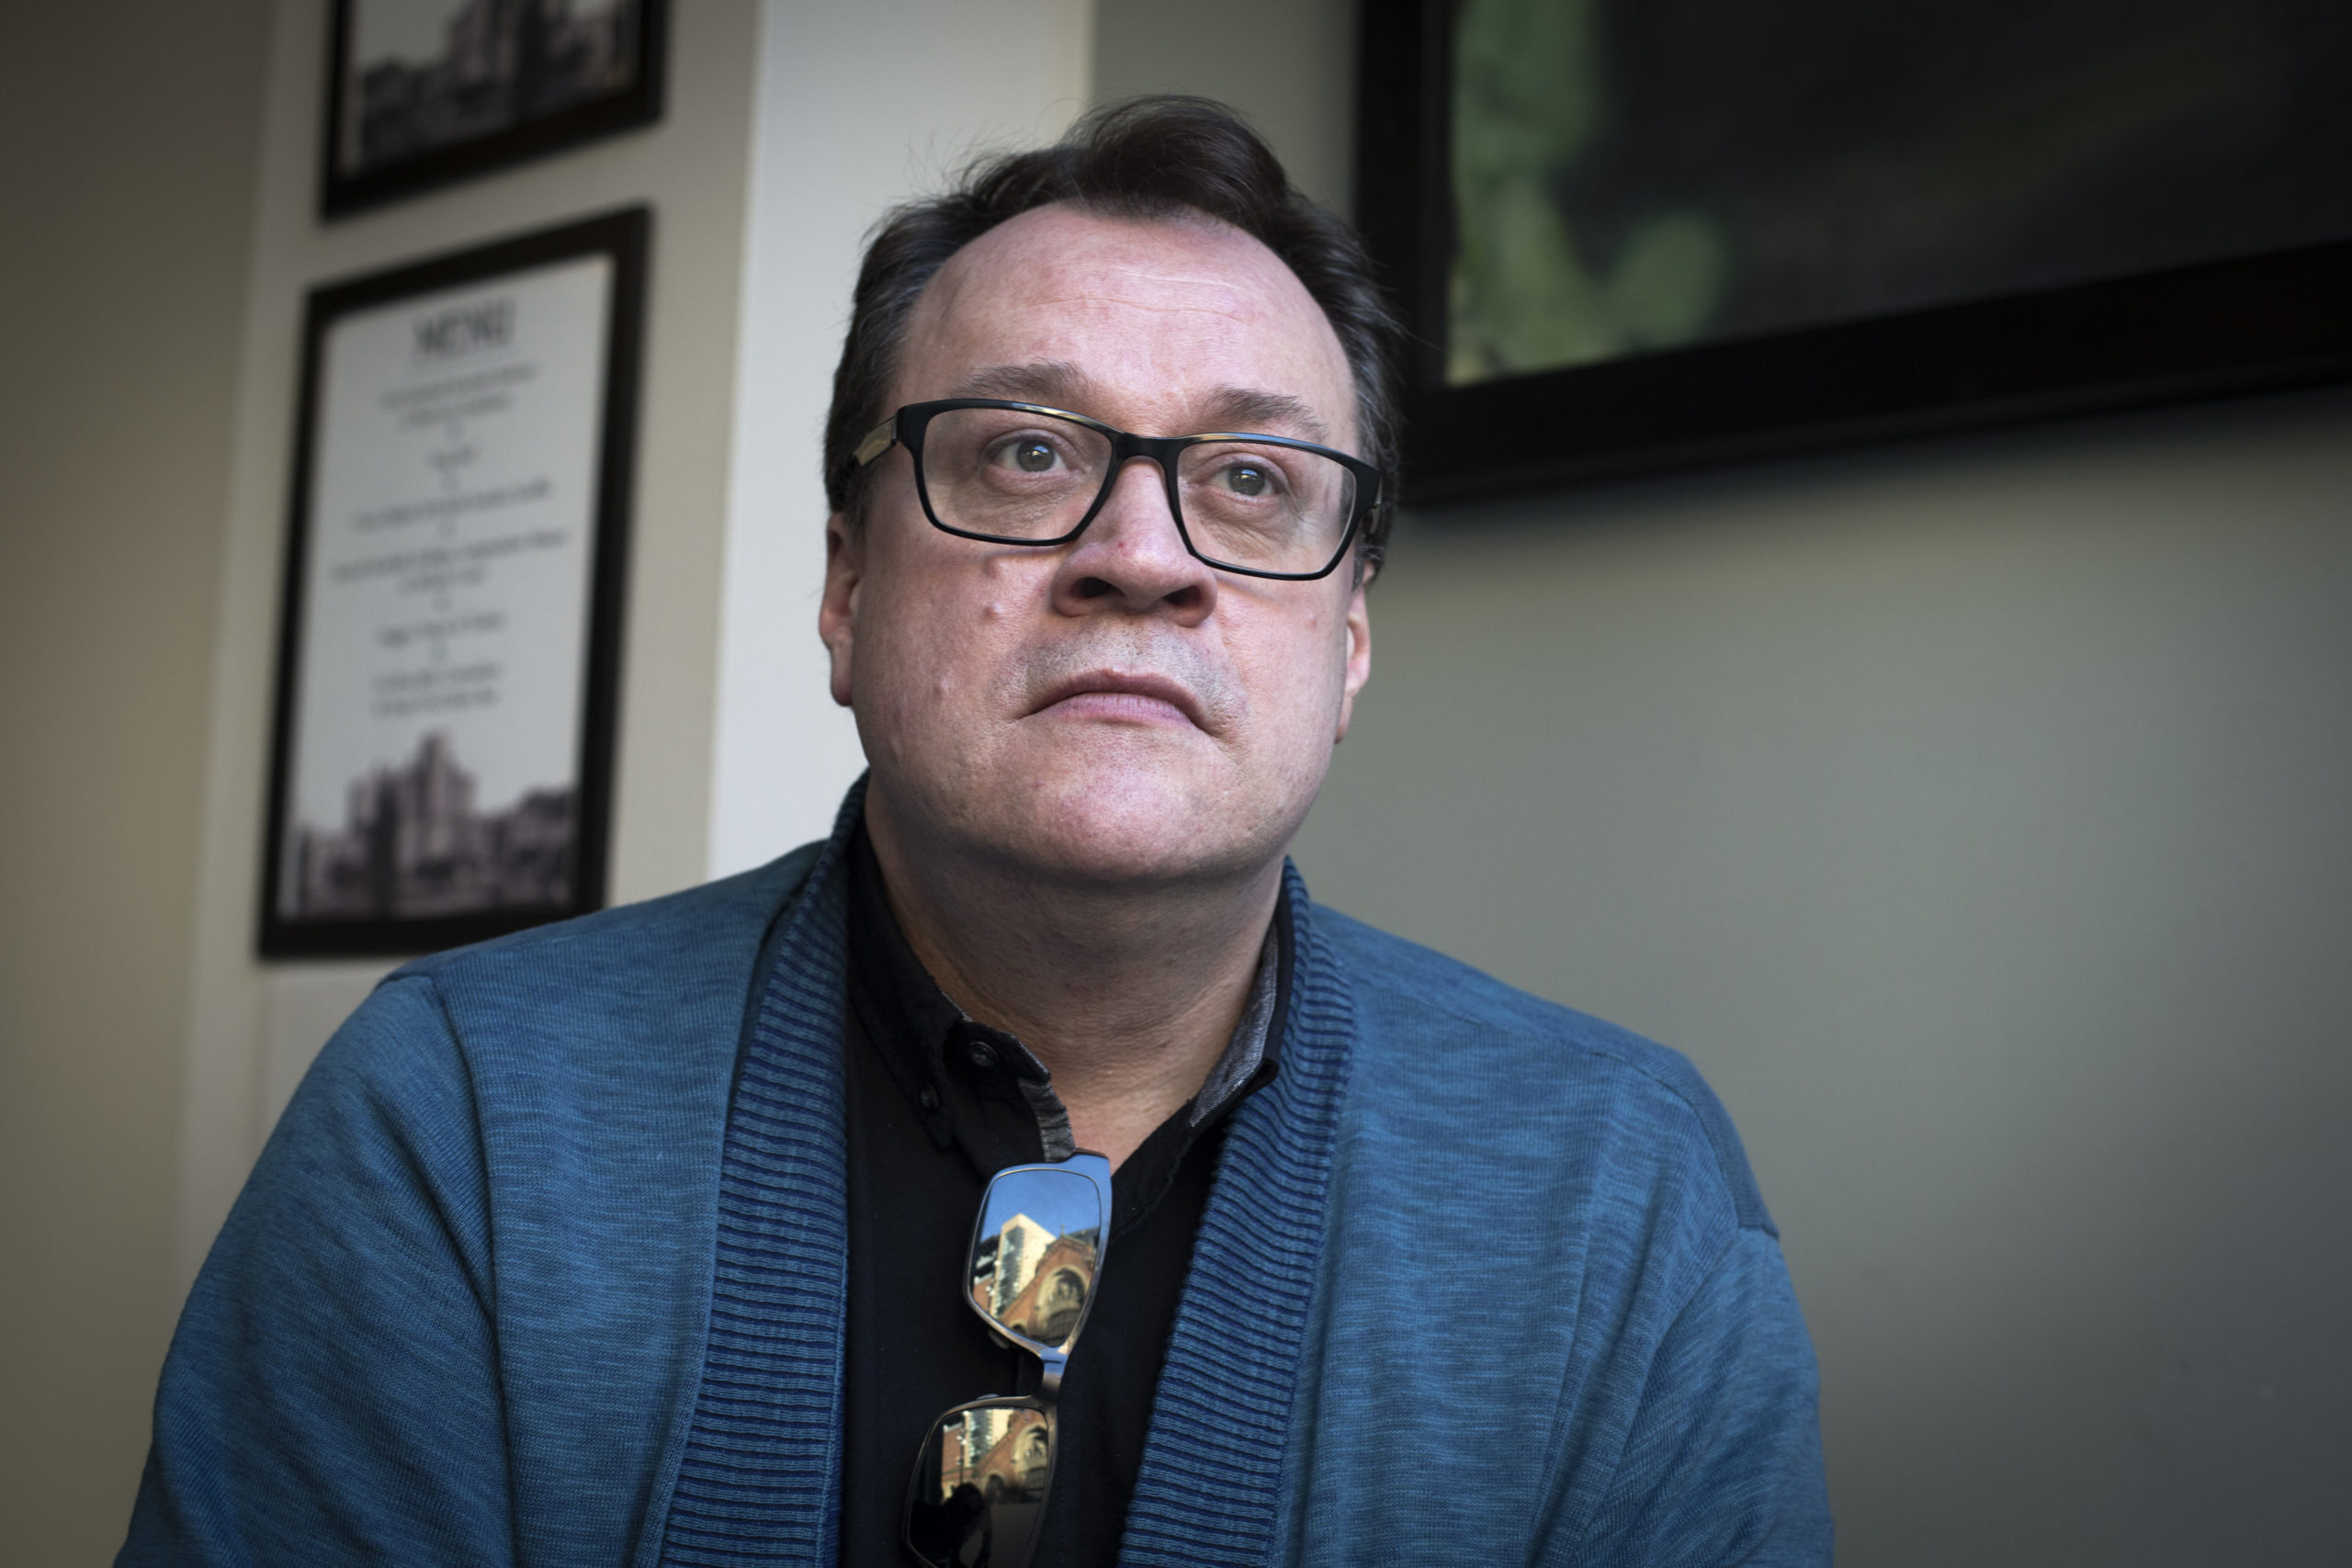 British television screenwriter and director Russell T Davies